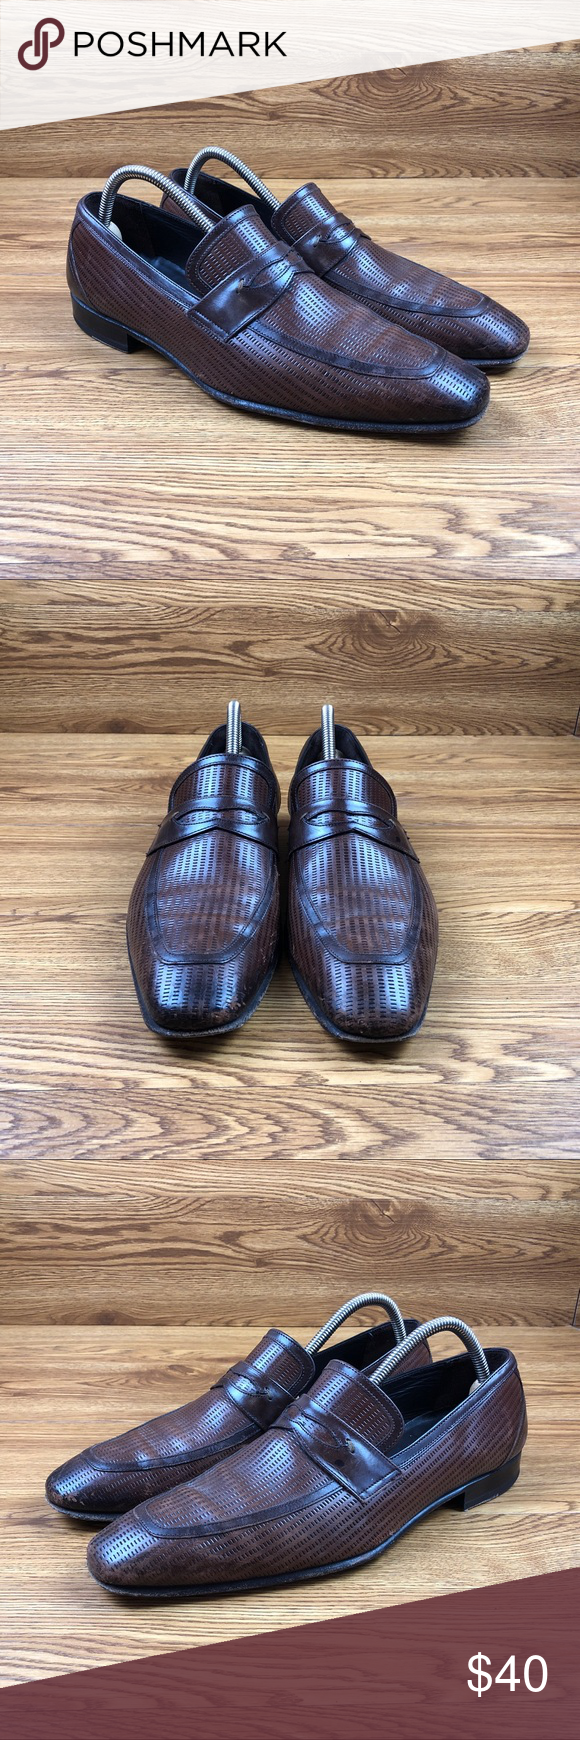 Leather loafers, Mezlan shoes, Loafers